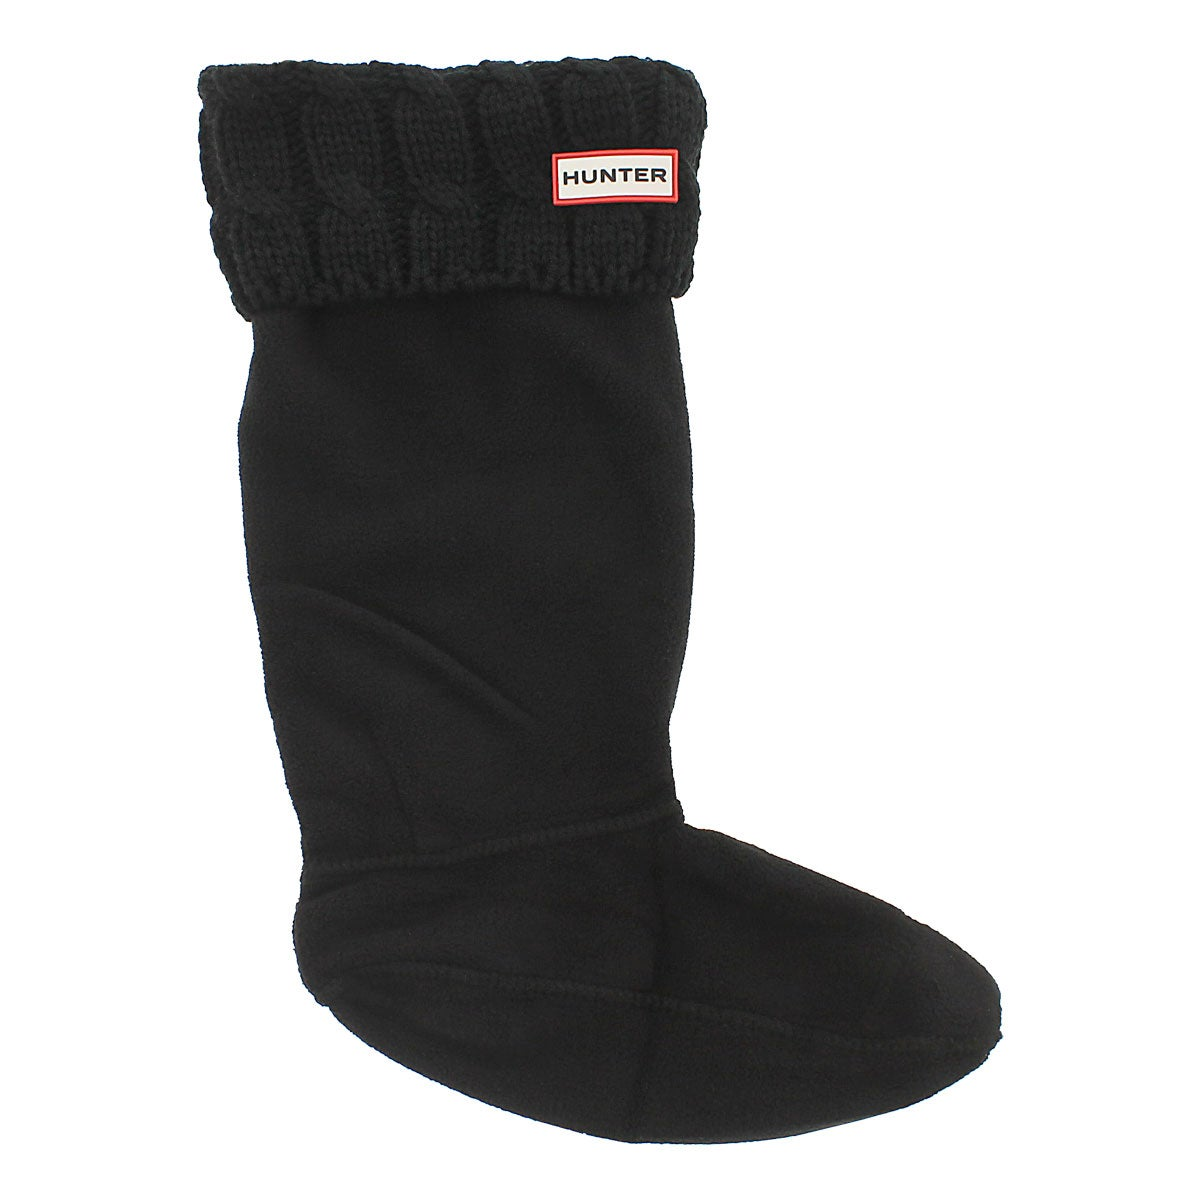 Lds 6 Stitch Cable black boot sock